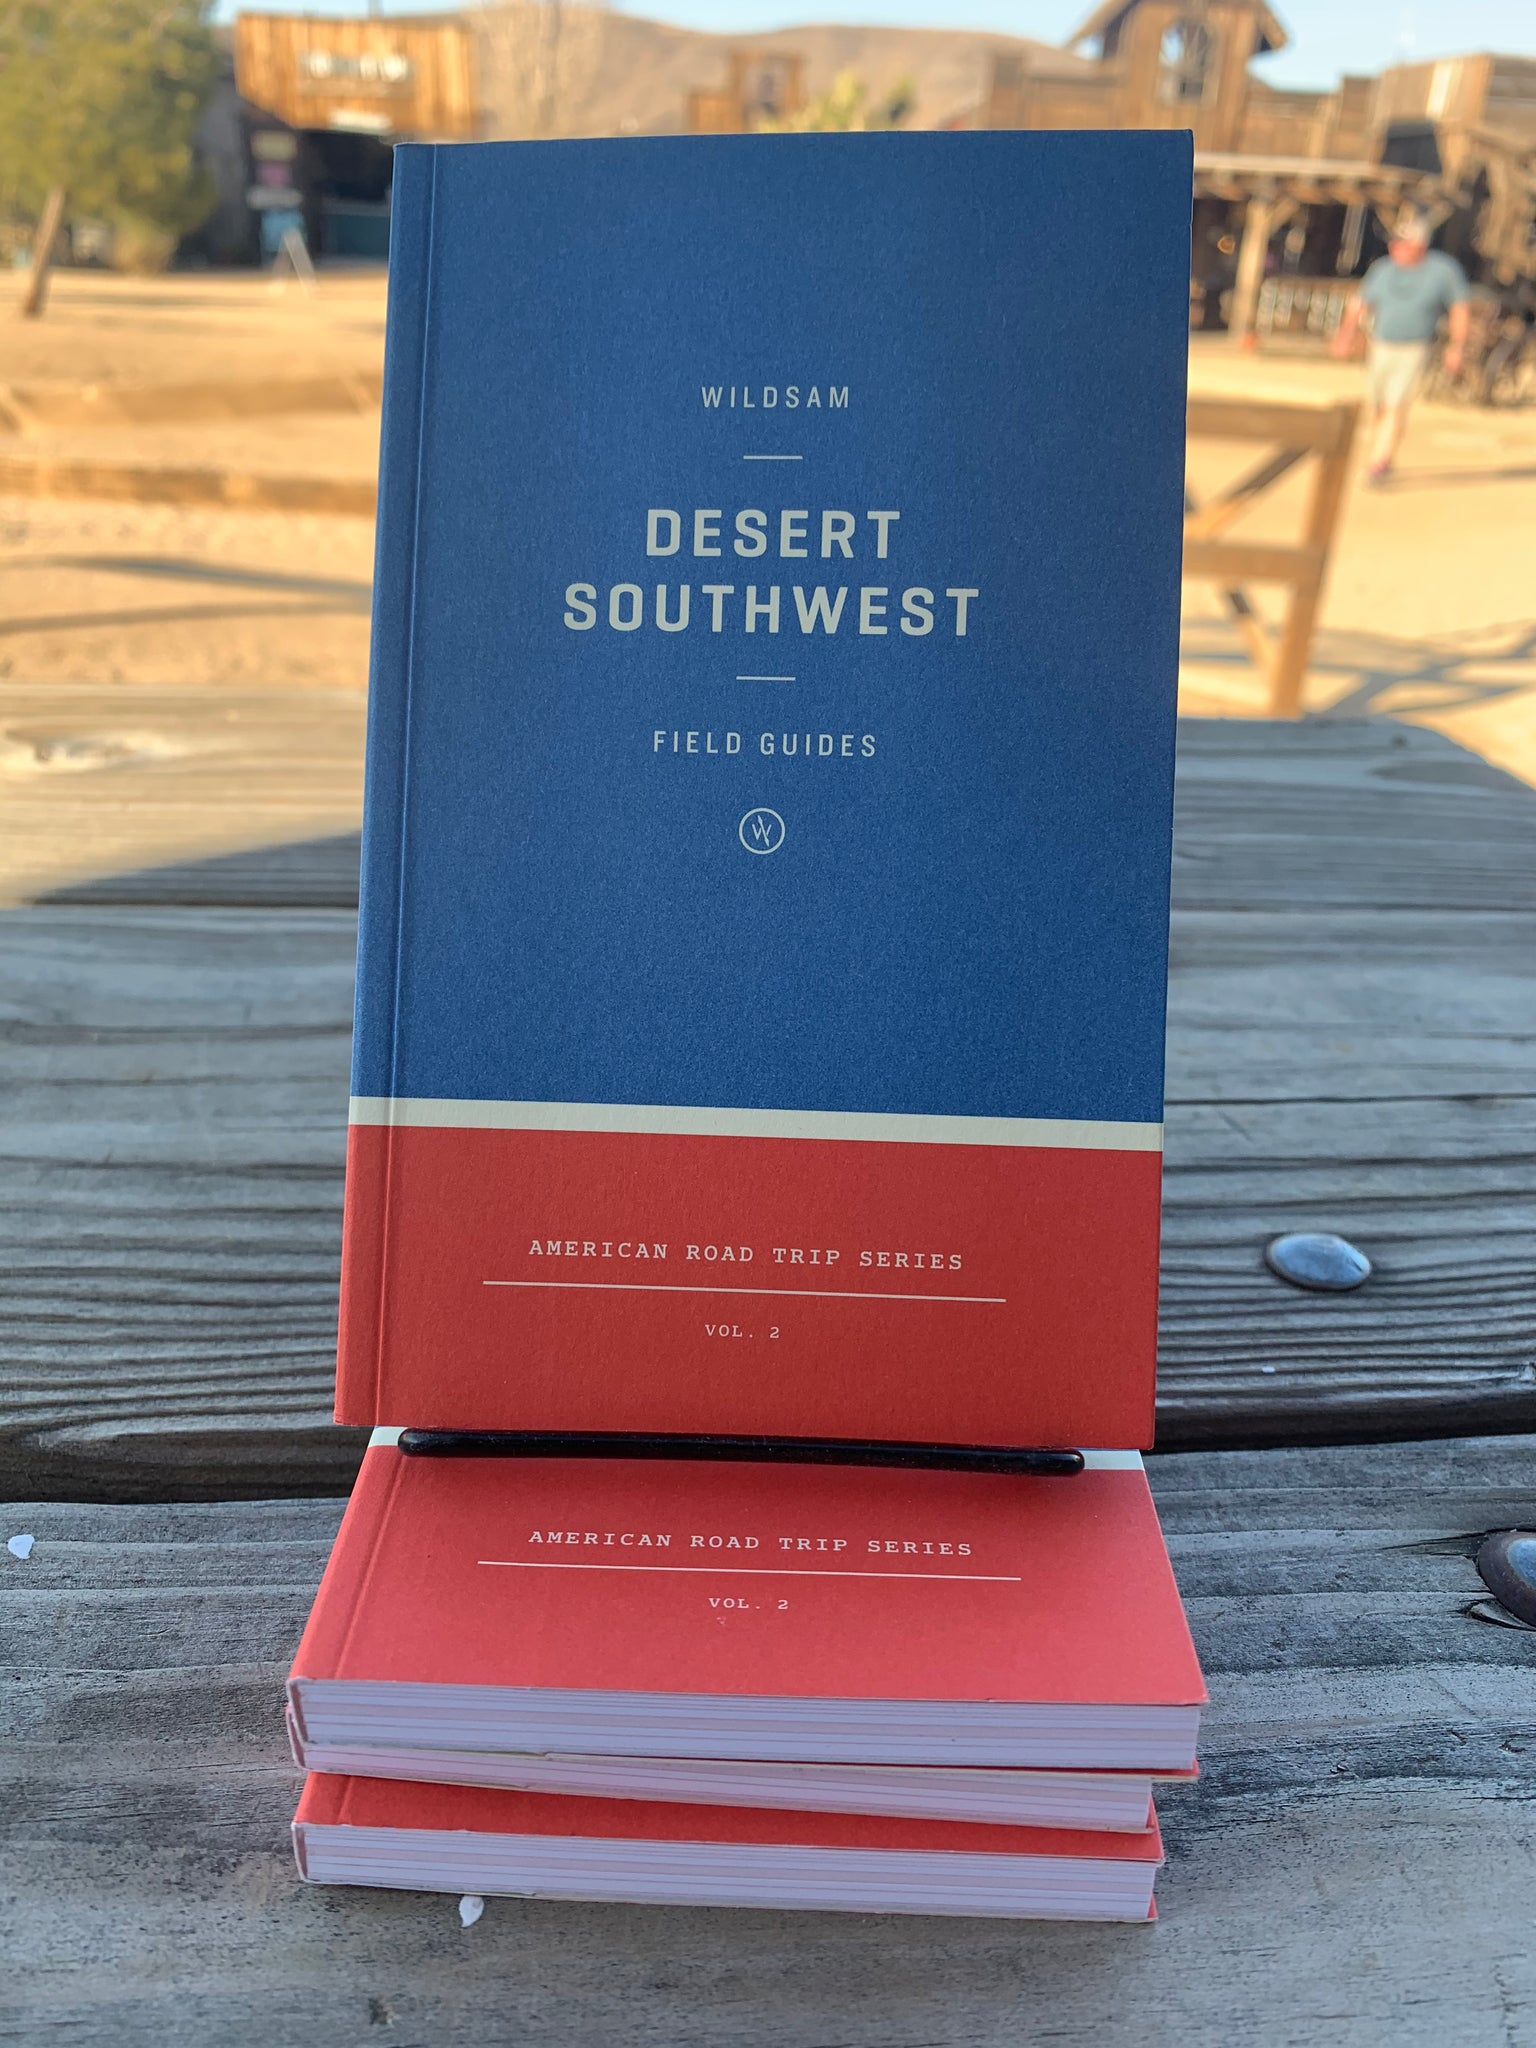 Wild Sam Desert Southwest Travel Guide